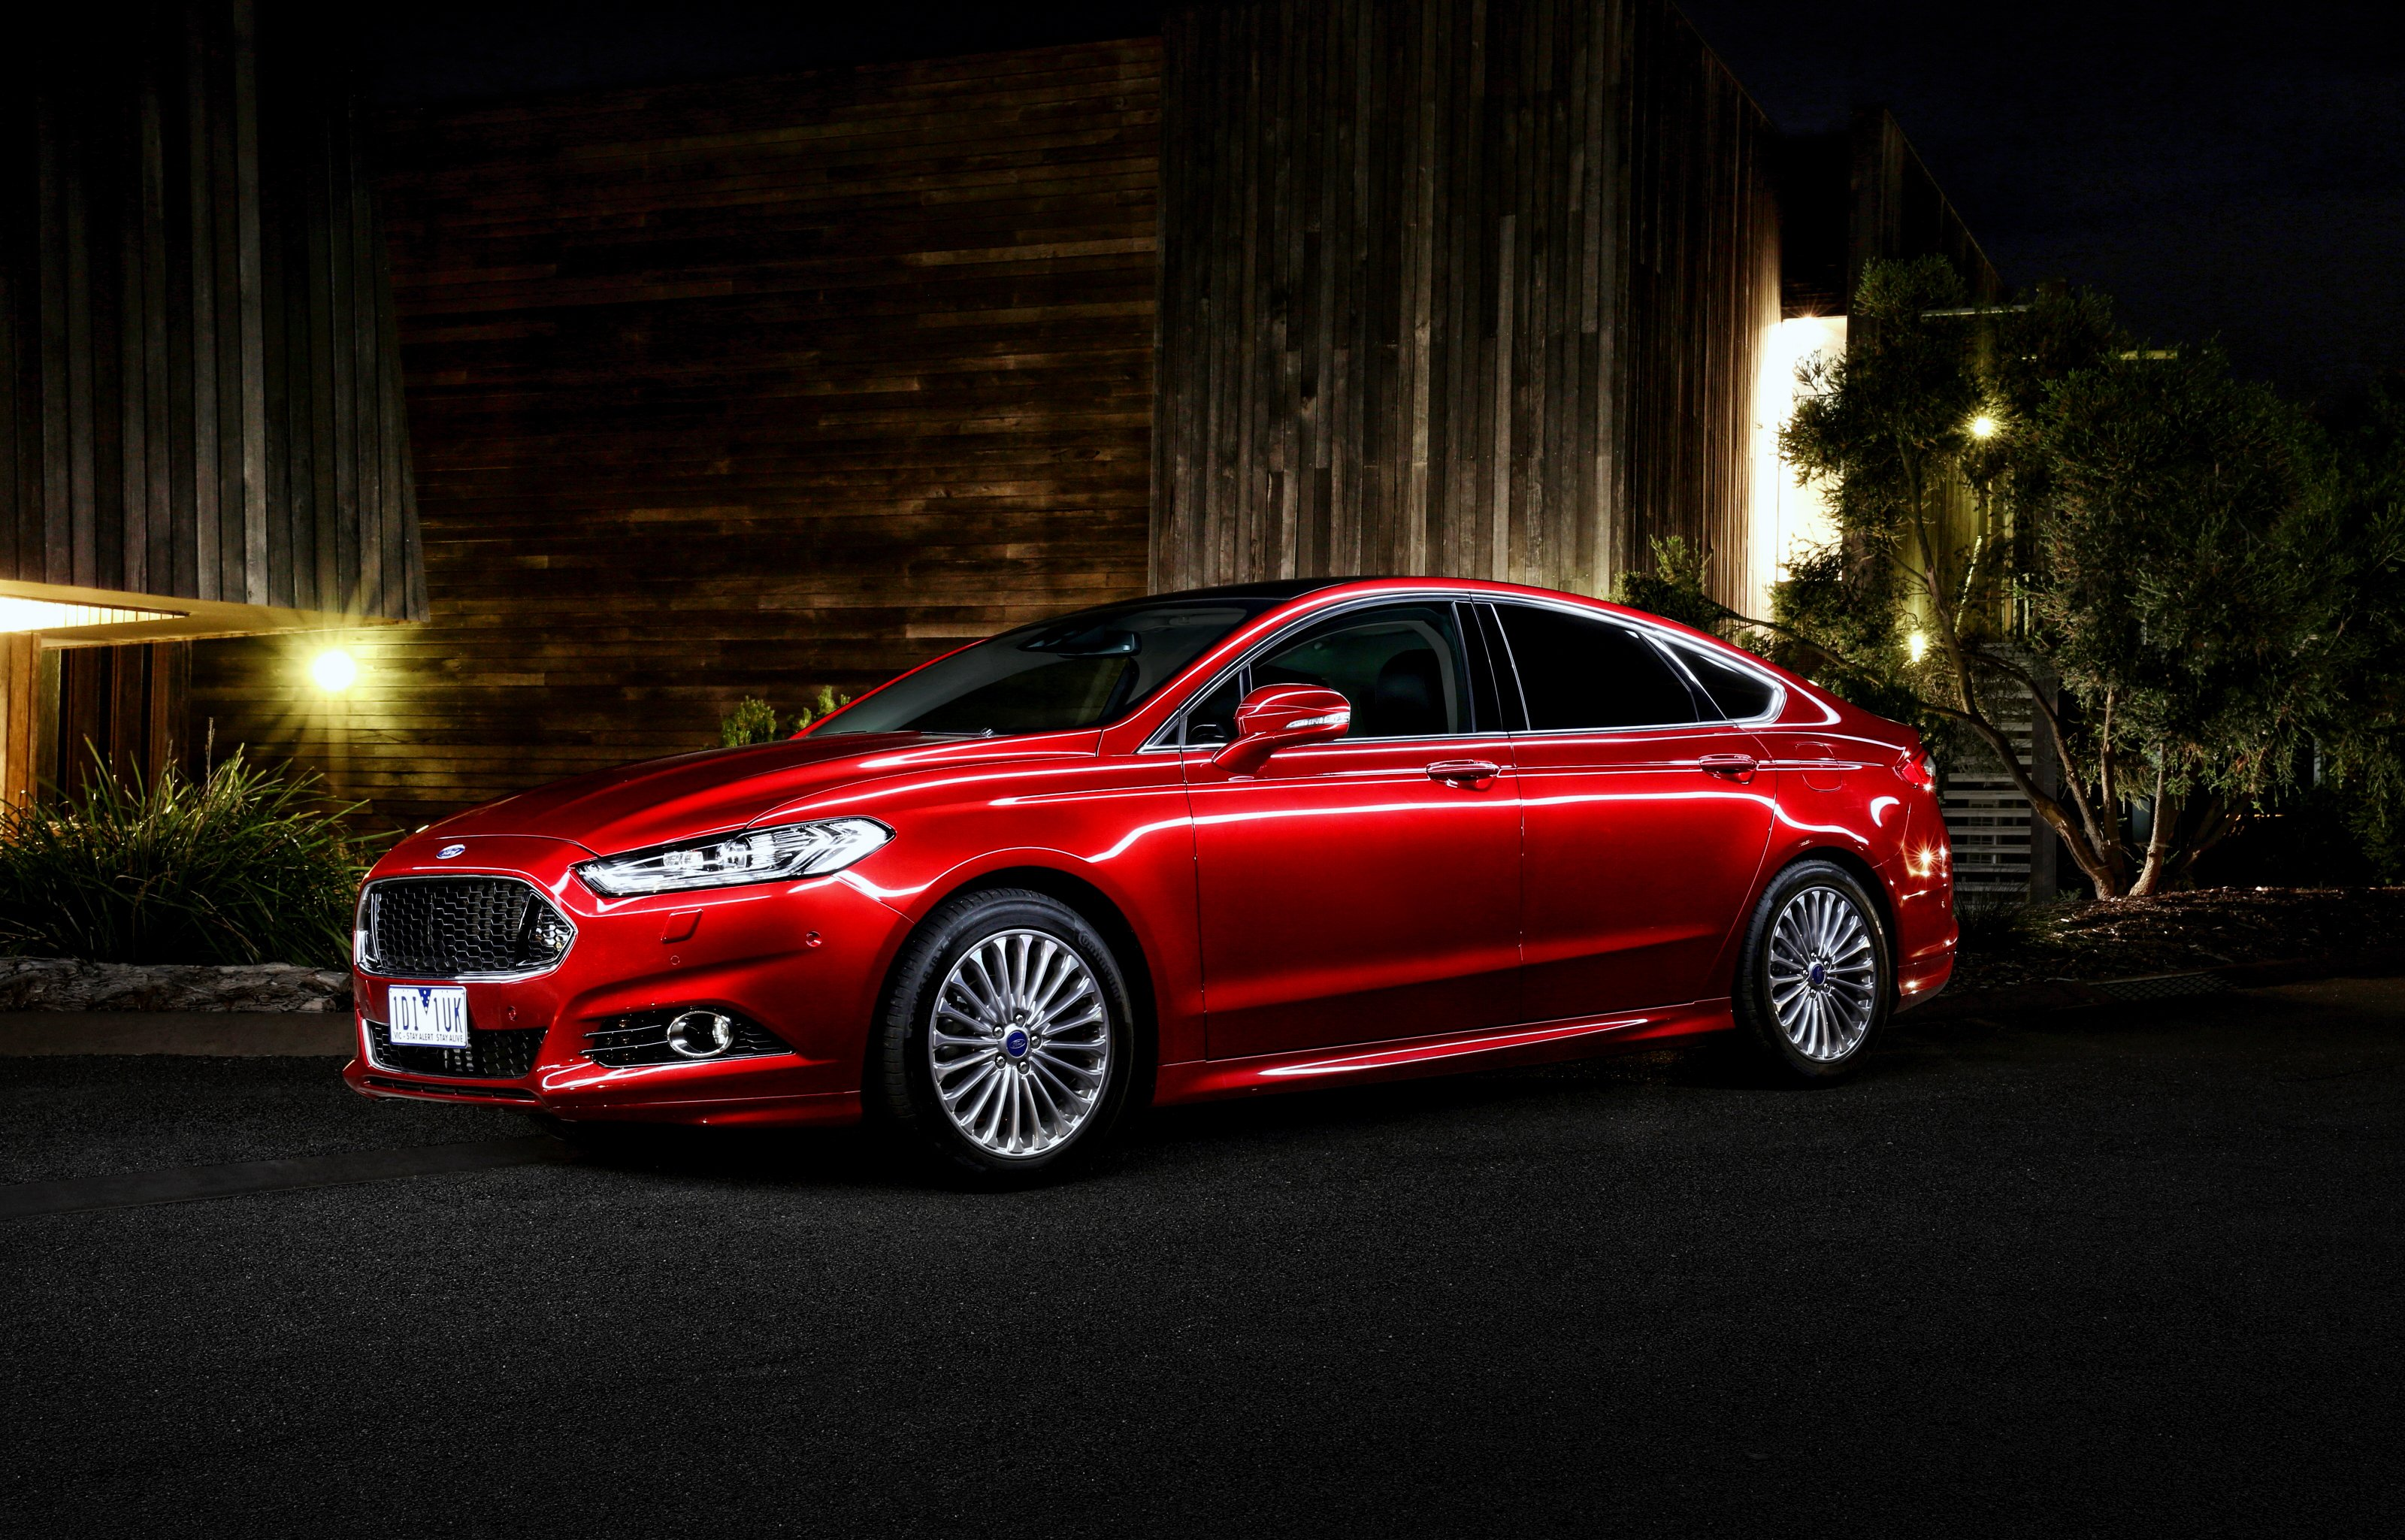 Ford Mondeo HD Wallpaper Background Image 3200x2049 ID 3200x2049